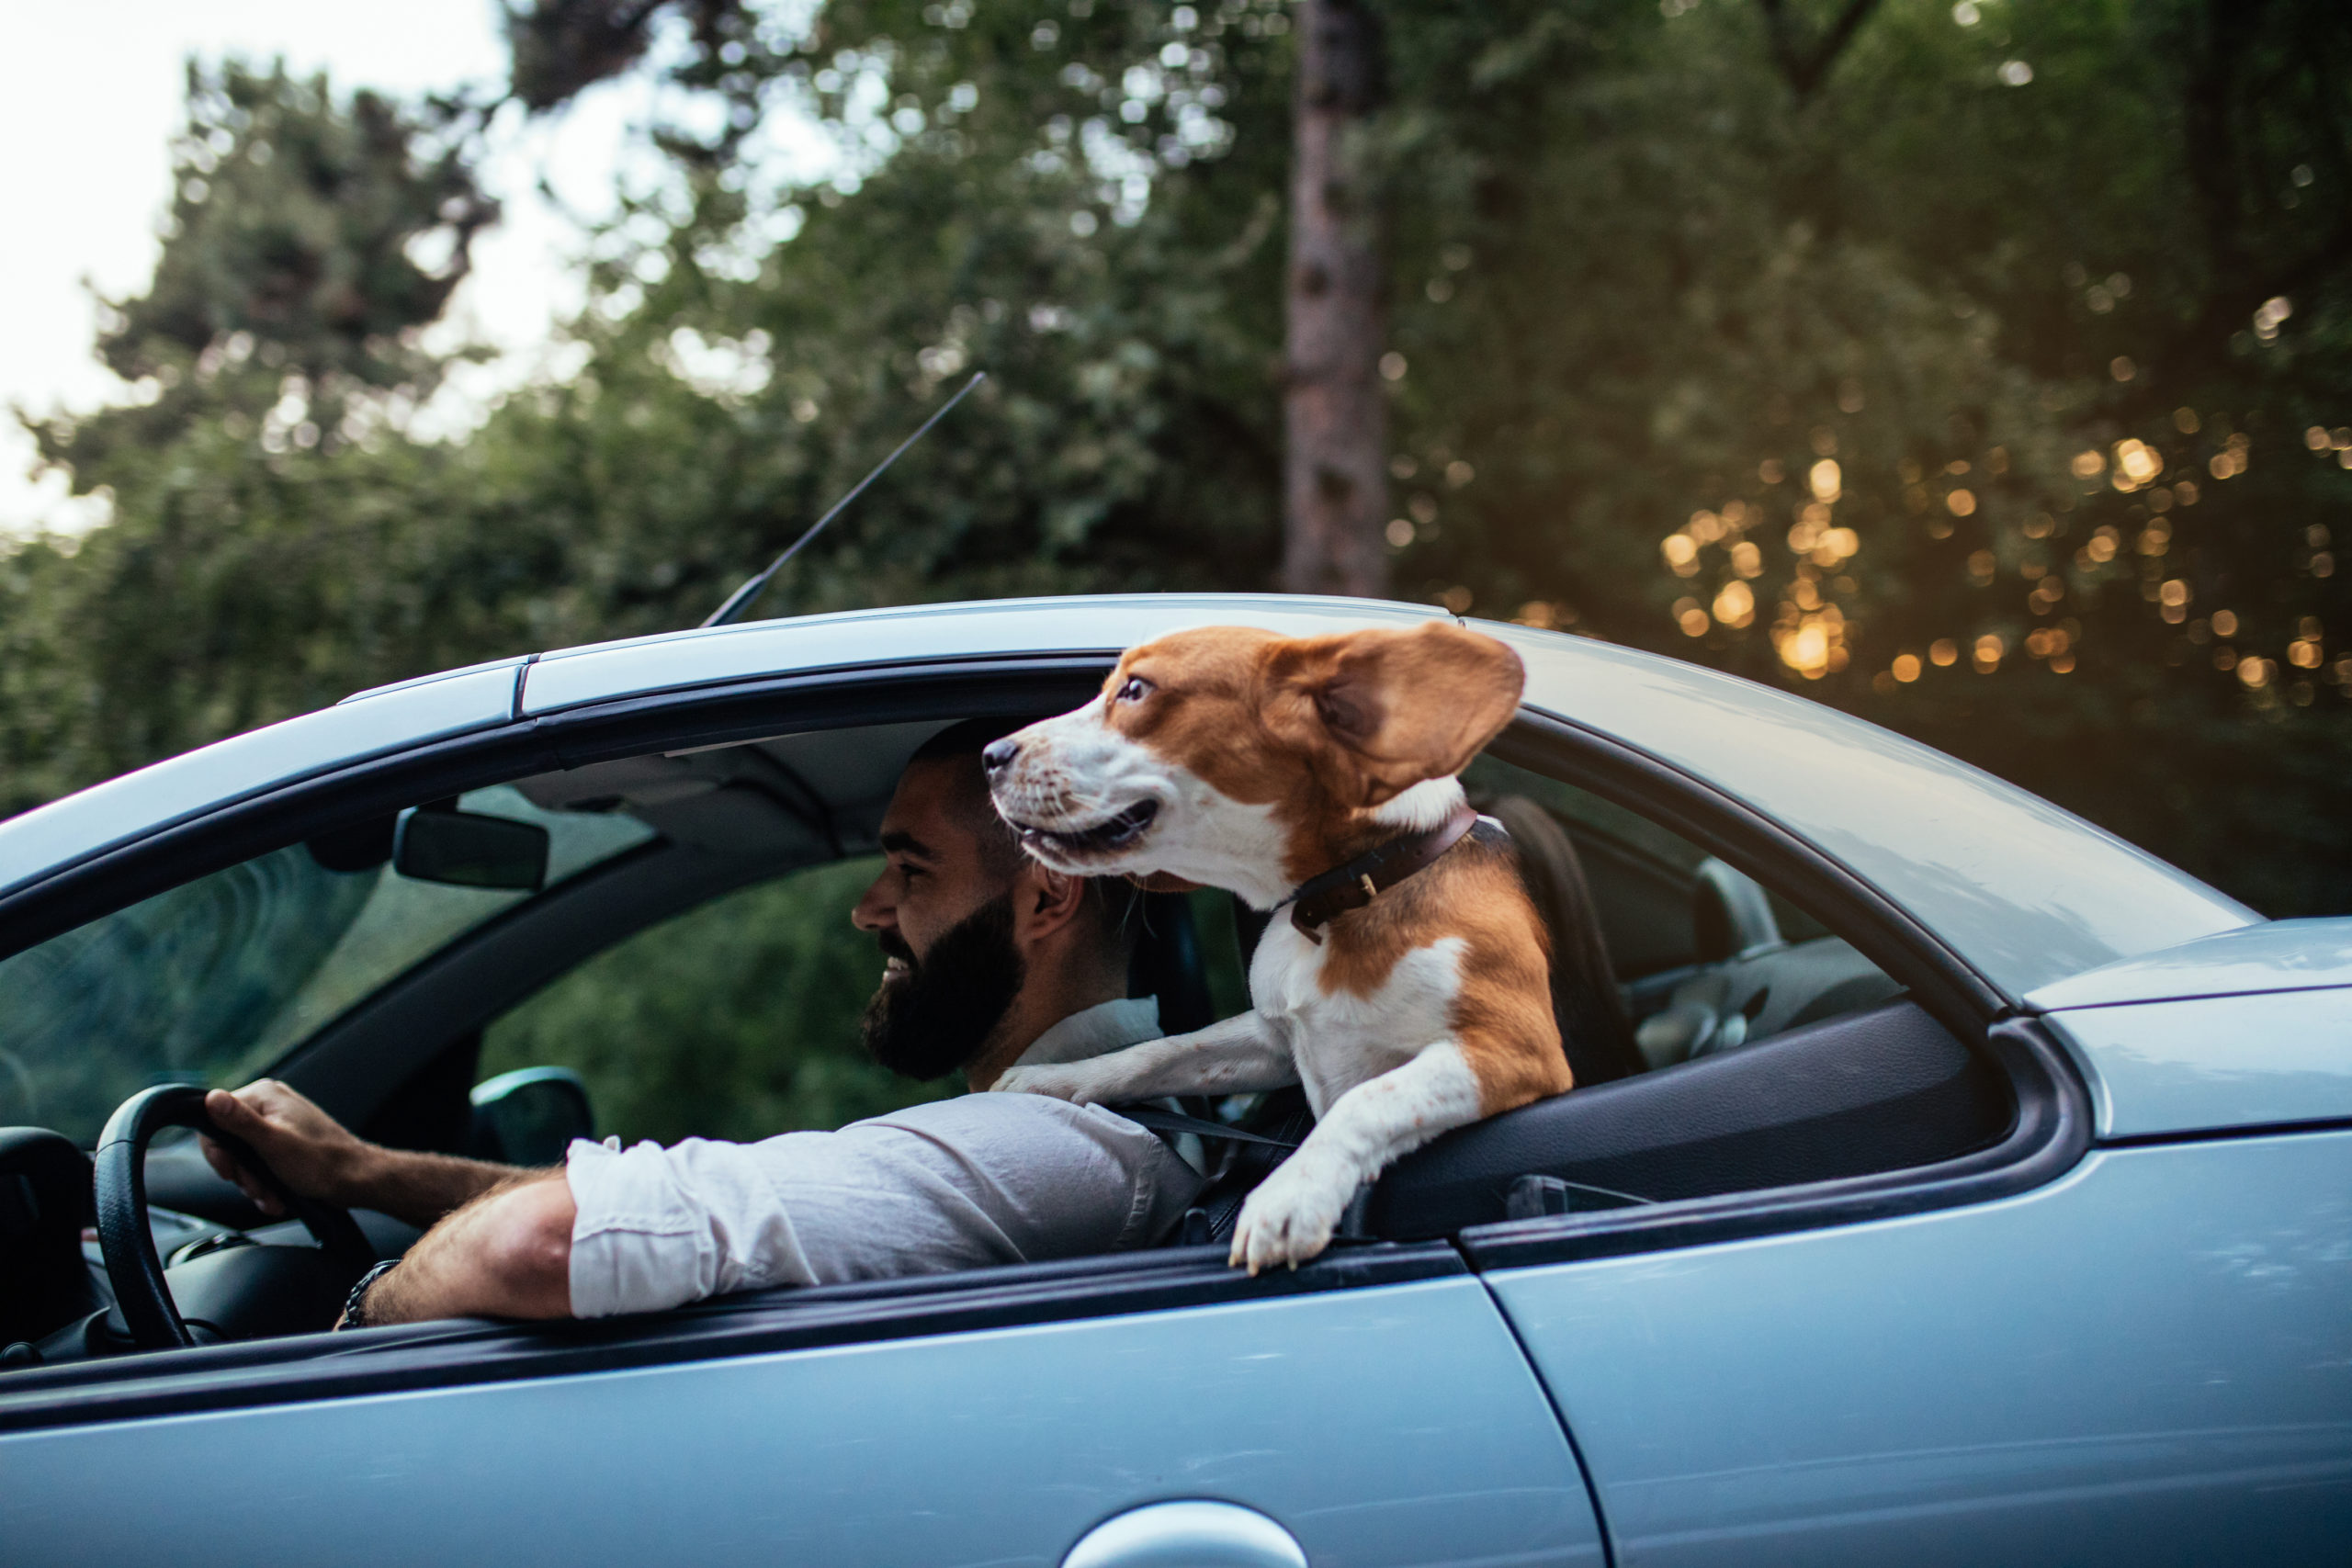 Shot of a young man riding with a dog in the car.